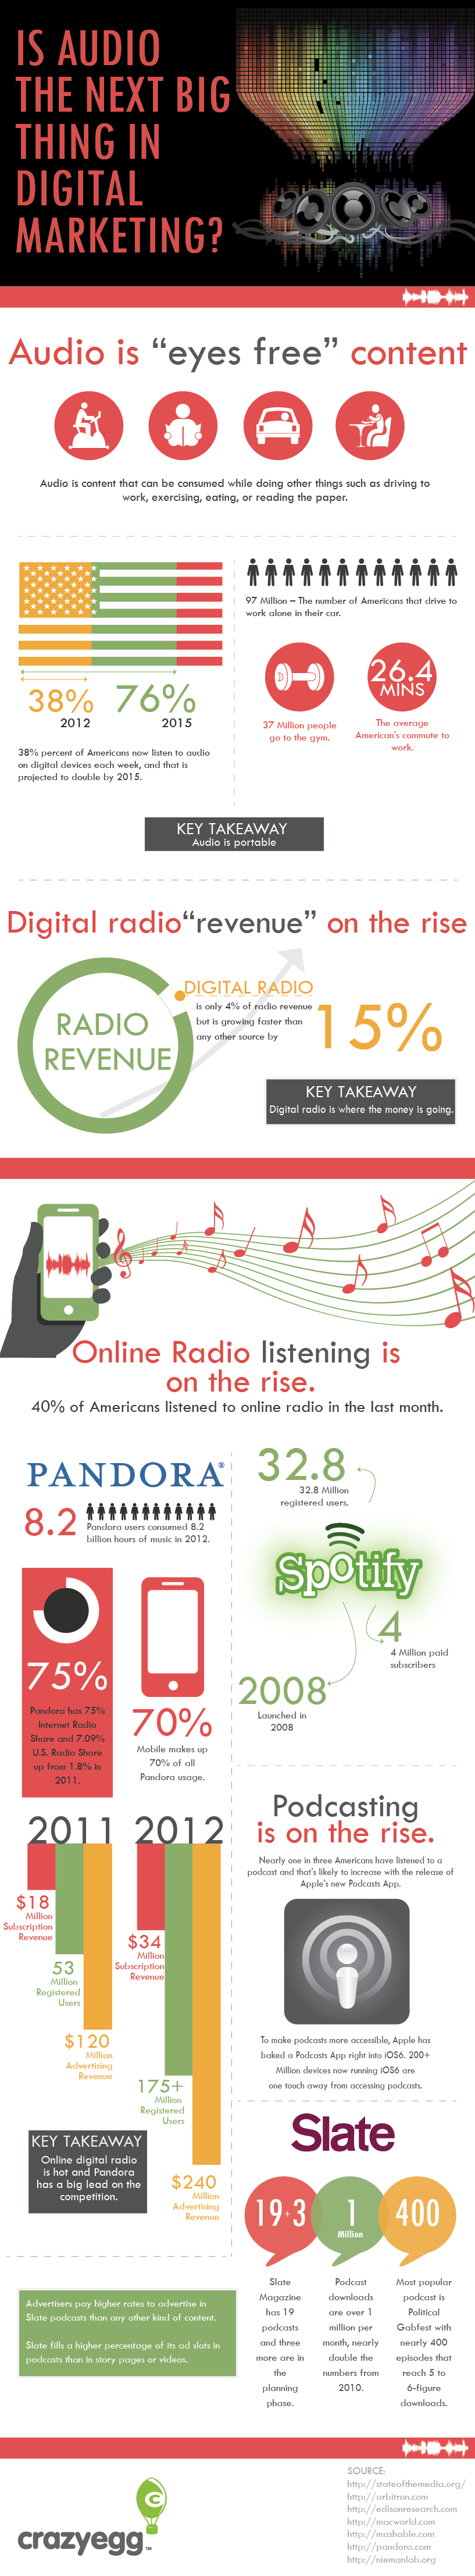 Is Audio The Next Big Thing In Digital Marketing? Infographic